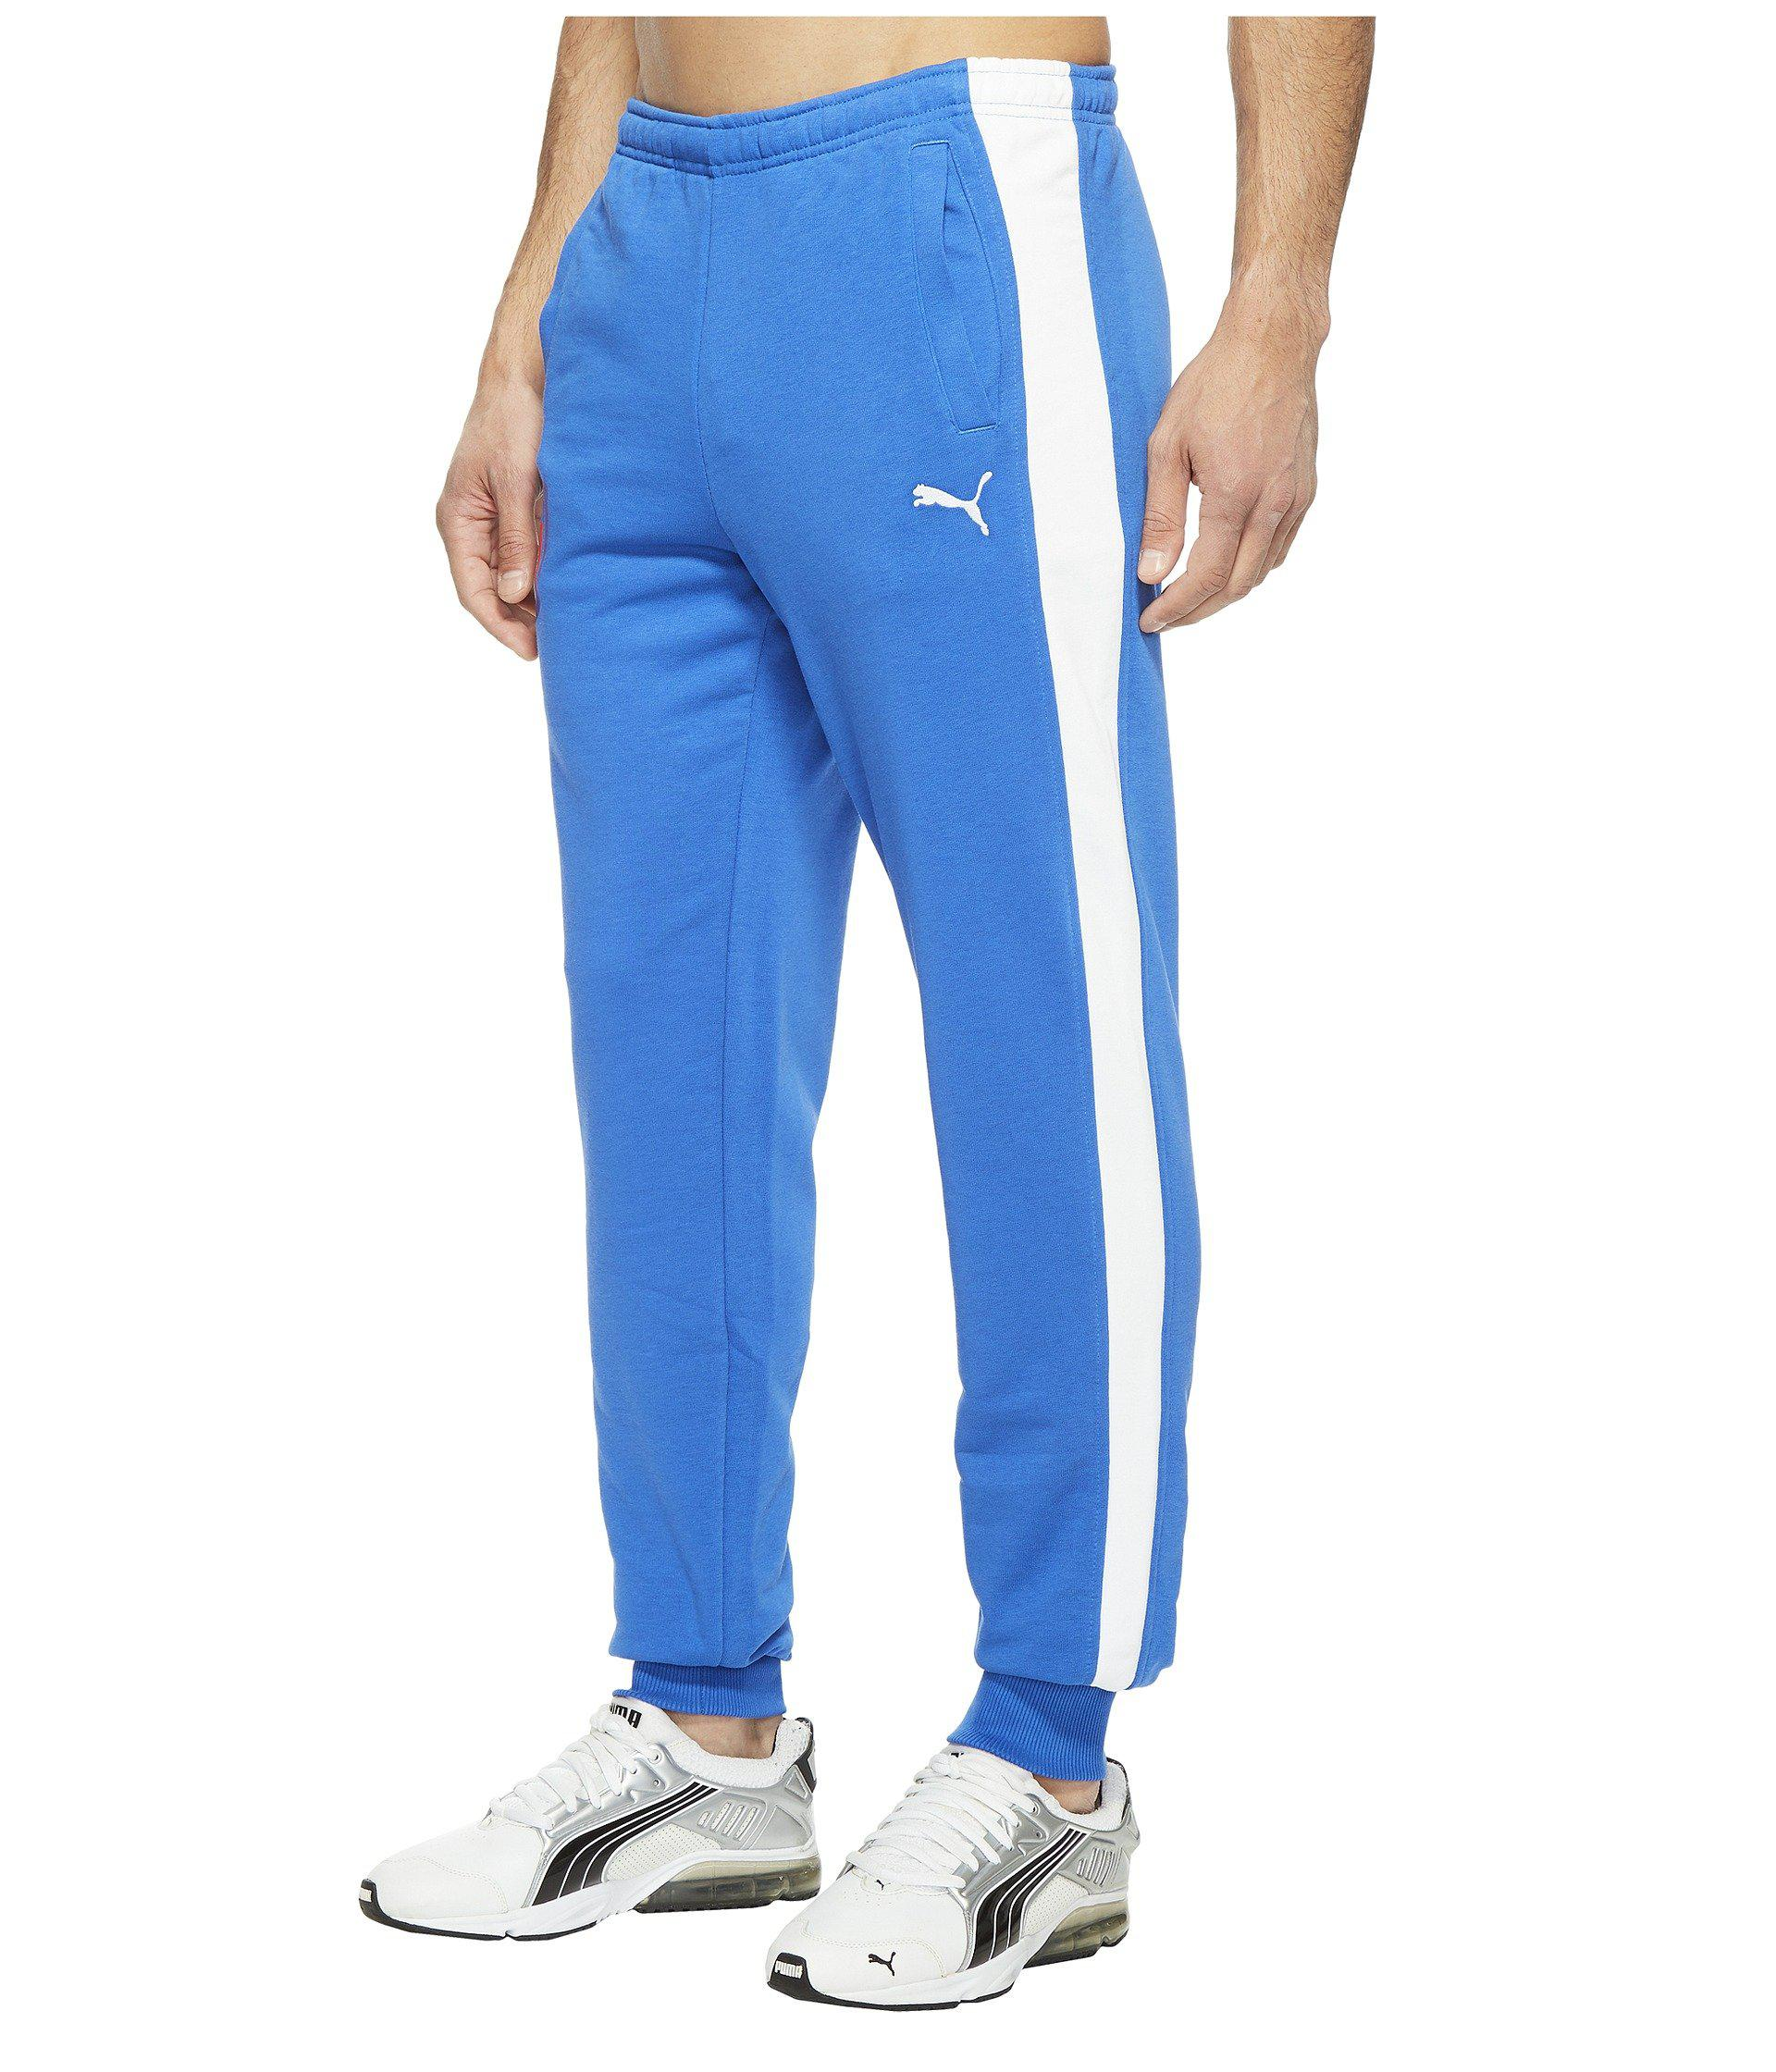 fbb64569dfff Lyst - PUMA Figc Italia Fanwear Cuffed Pants in Blue for Men